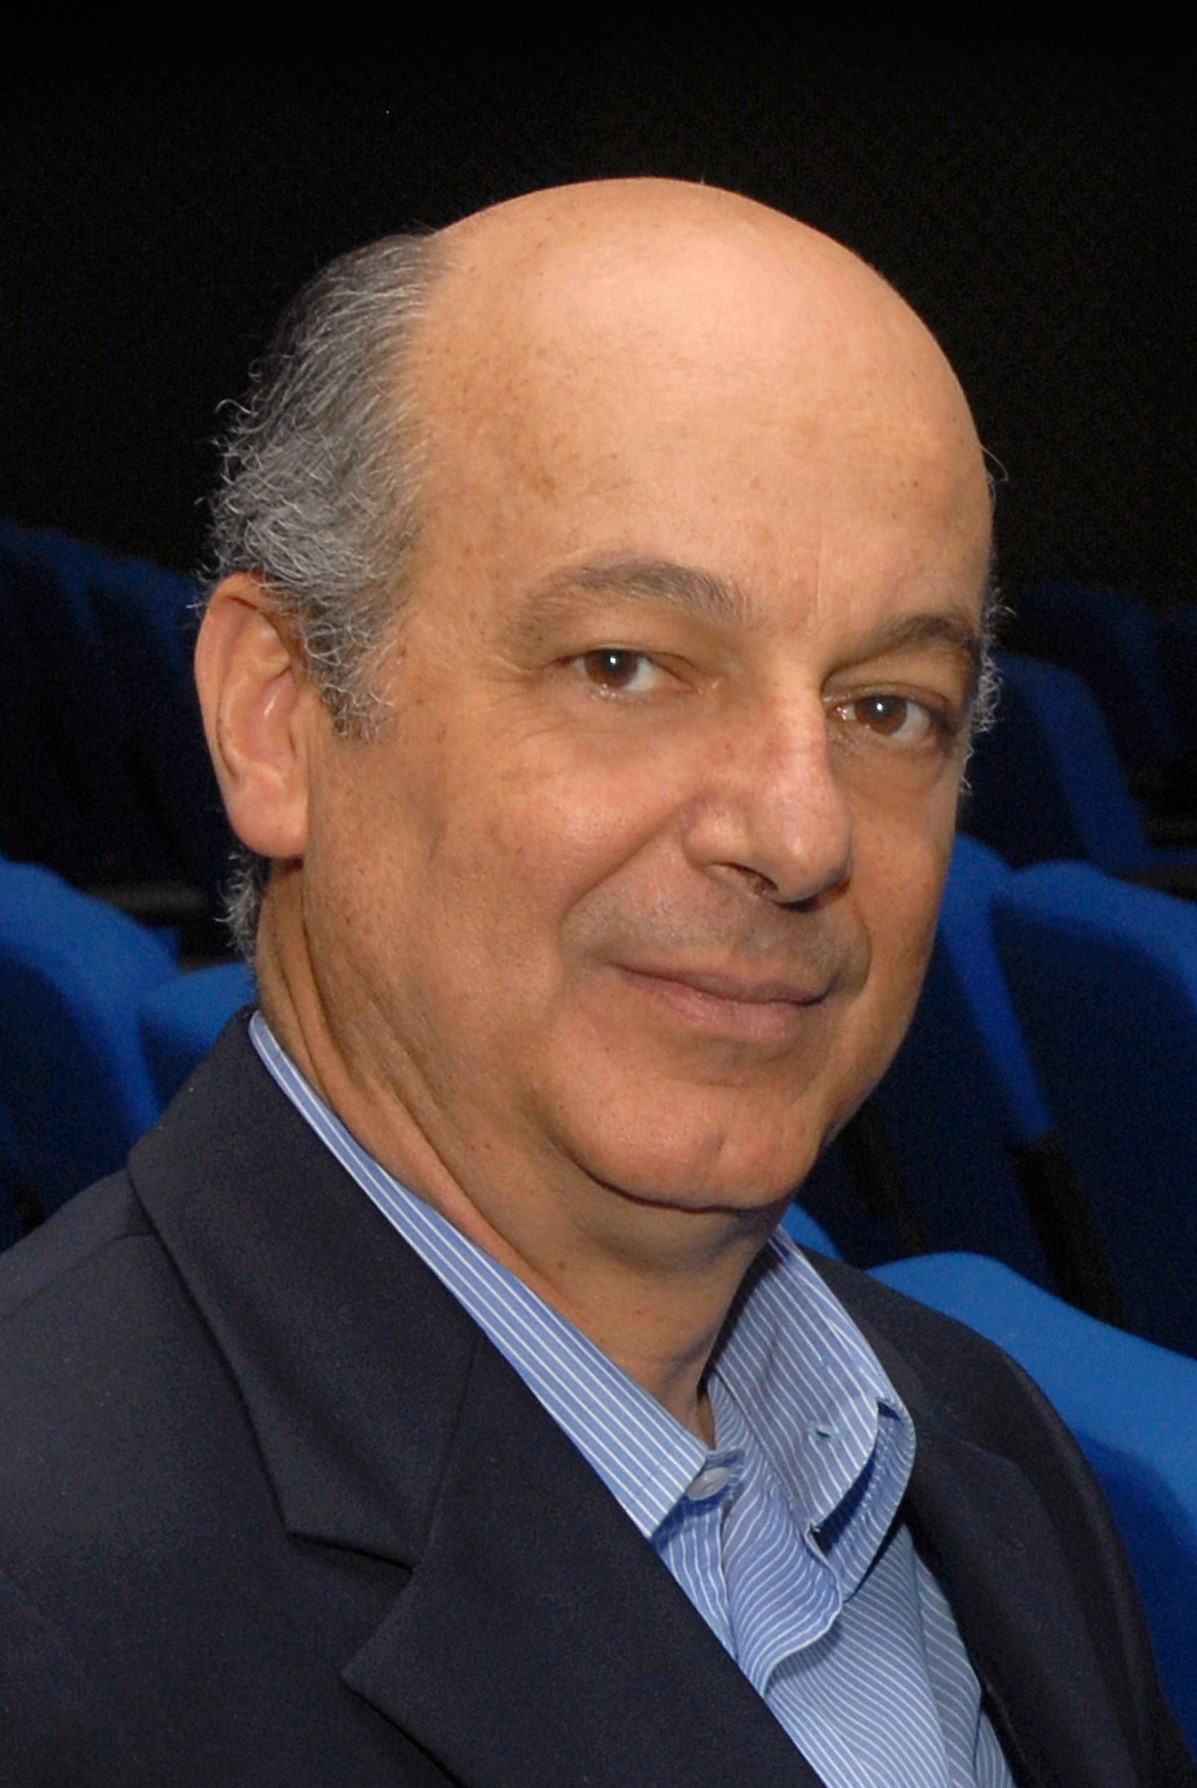 Paulo Roberto Guedes